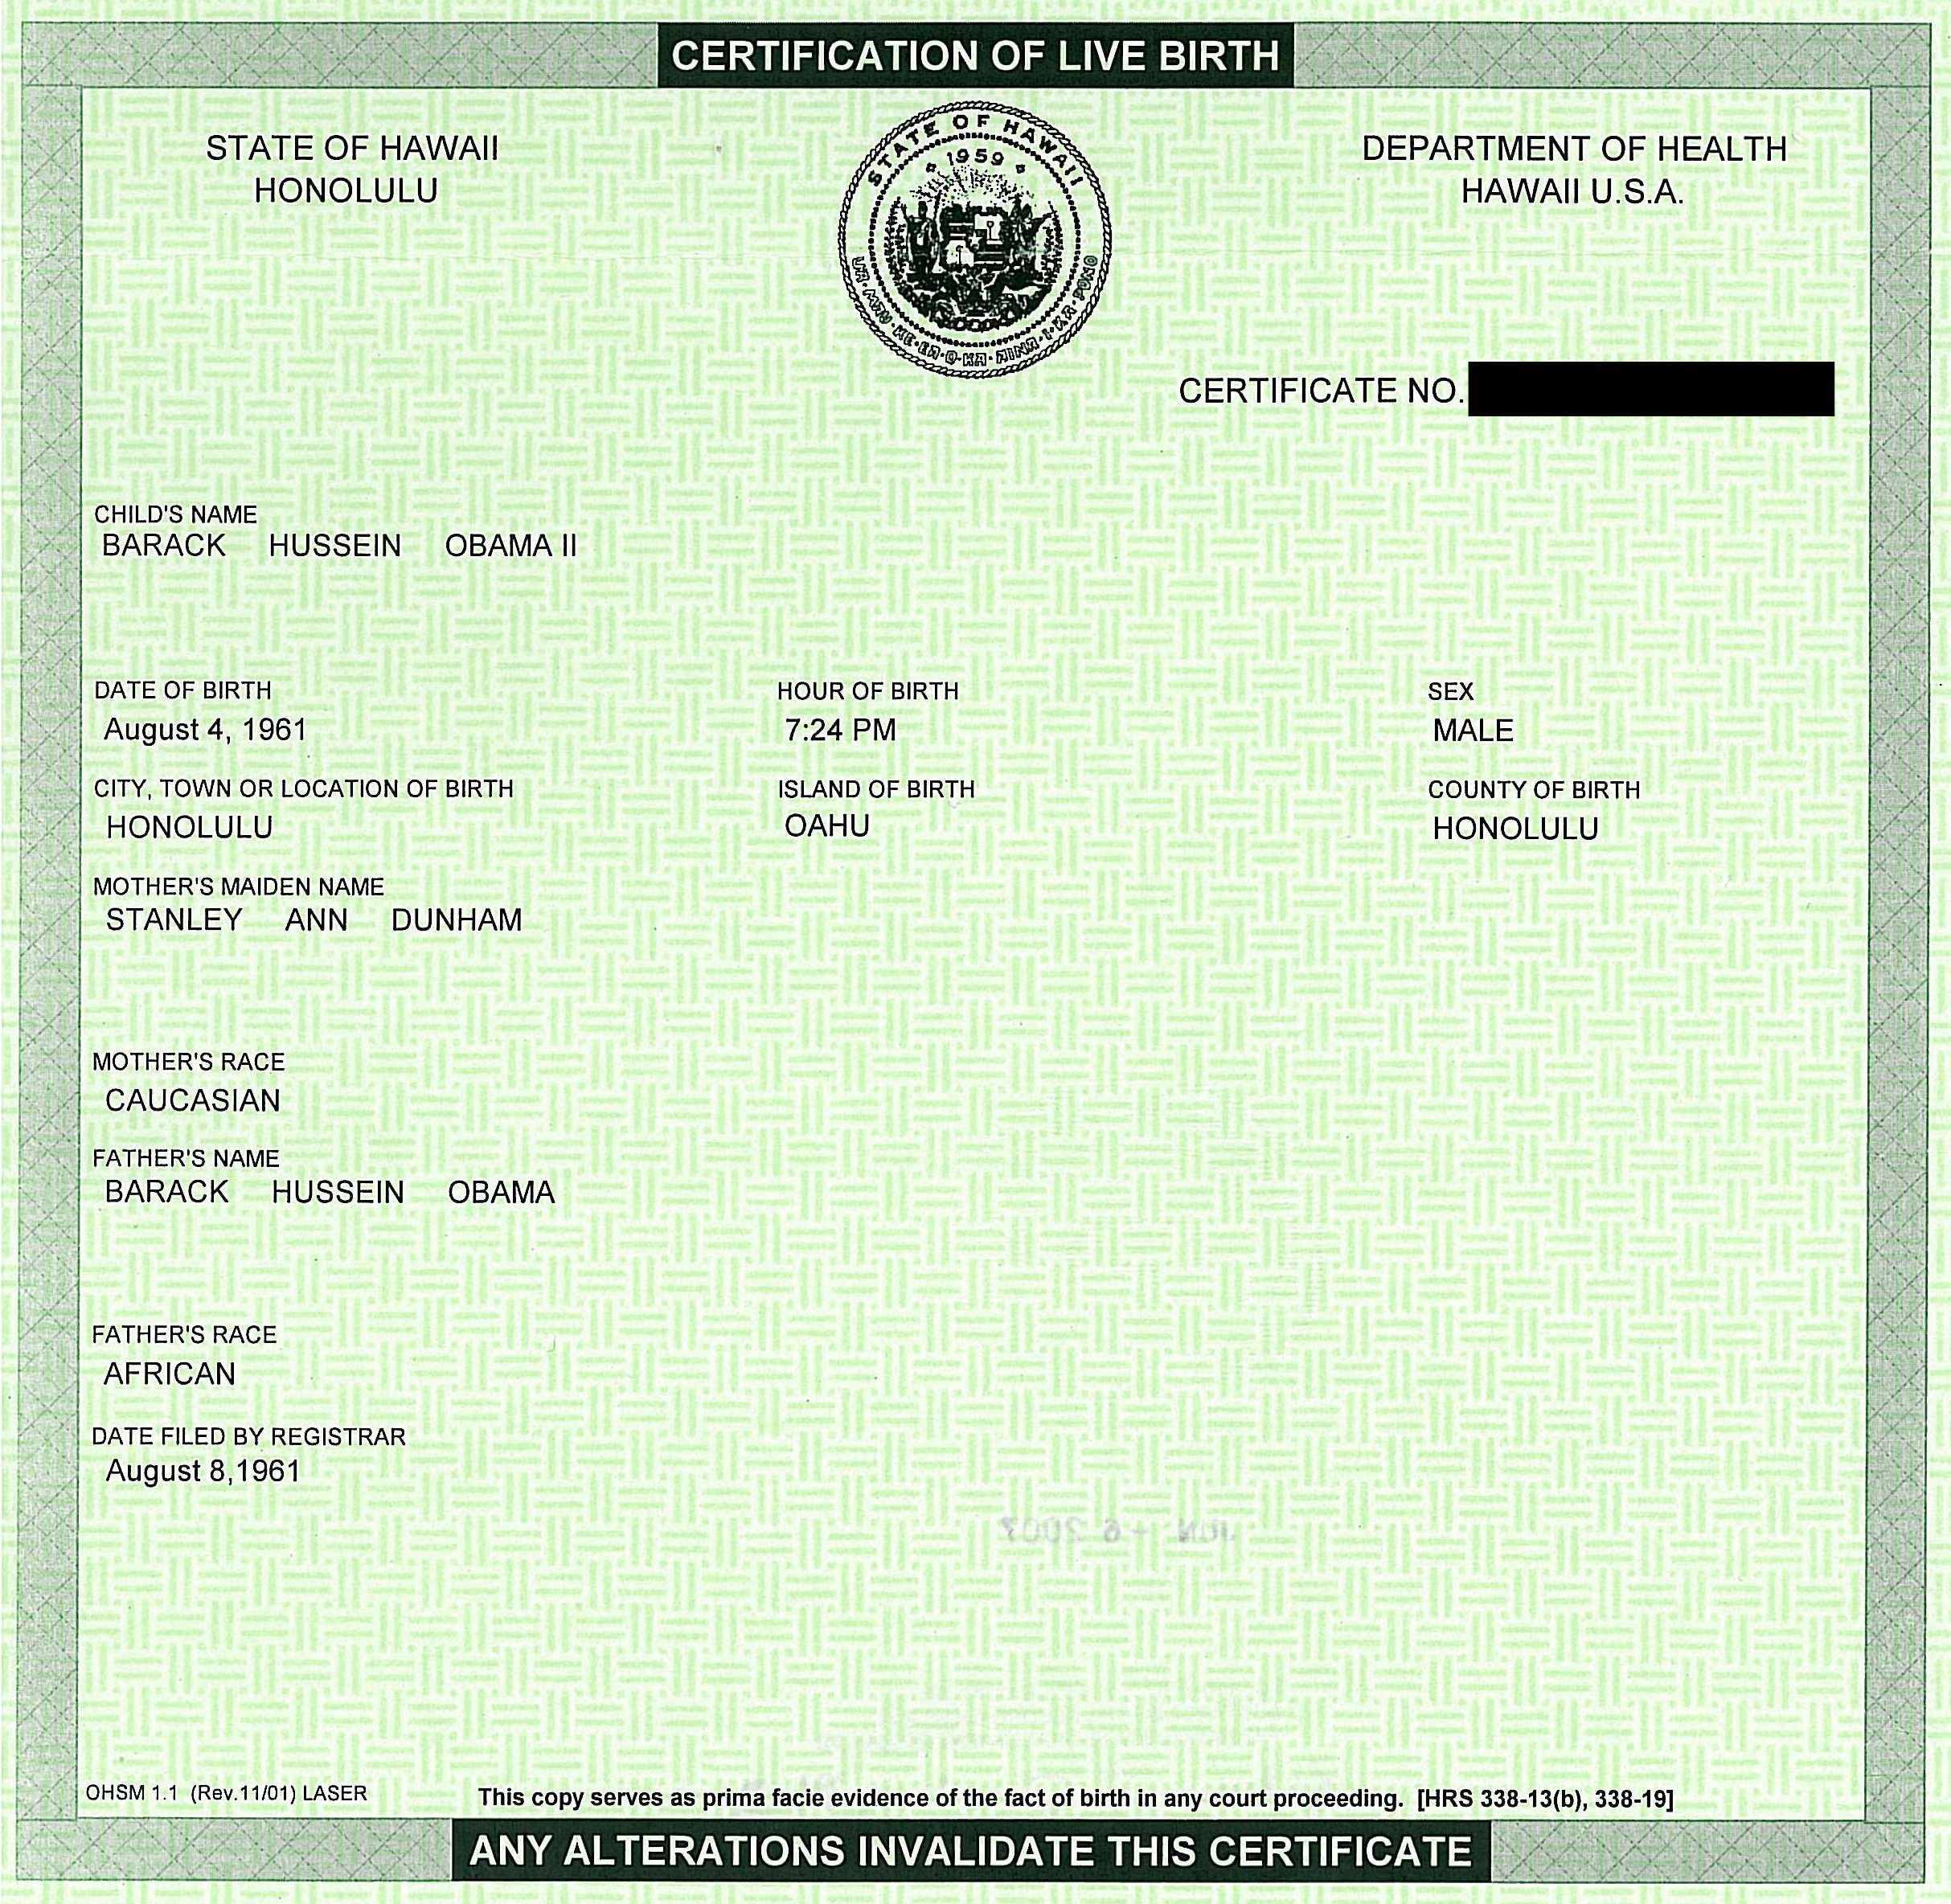 obama birth certificate Obama Birth Certificate